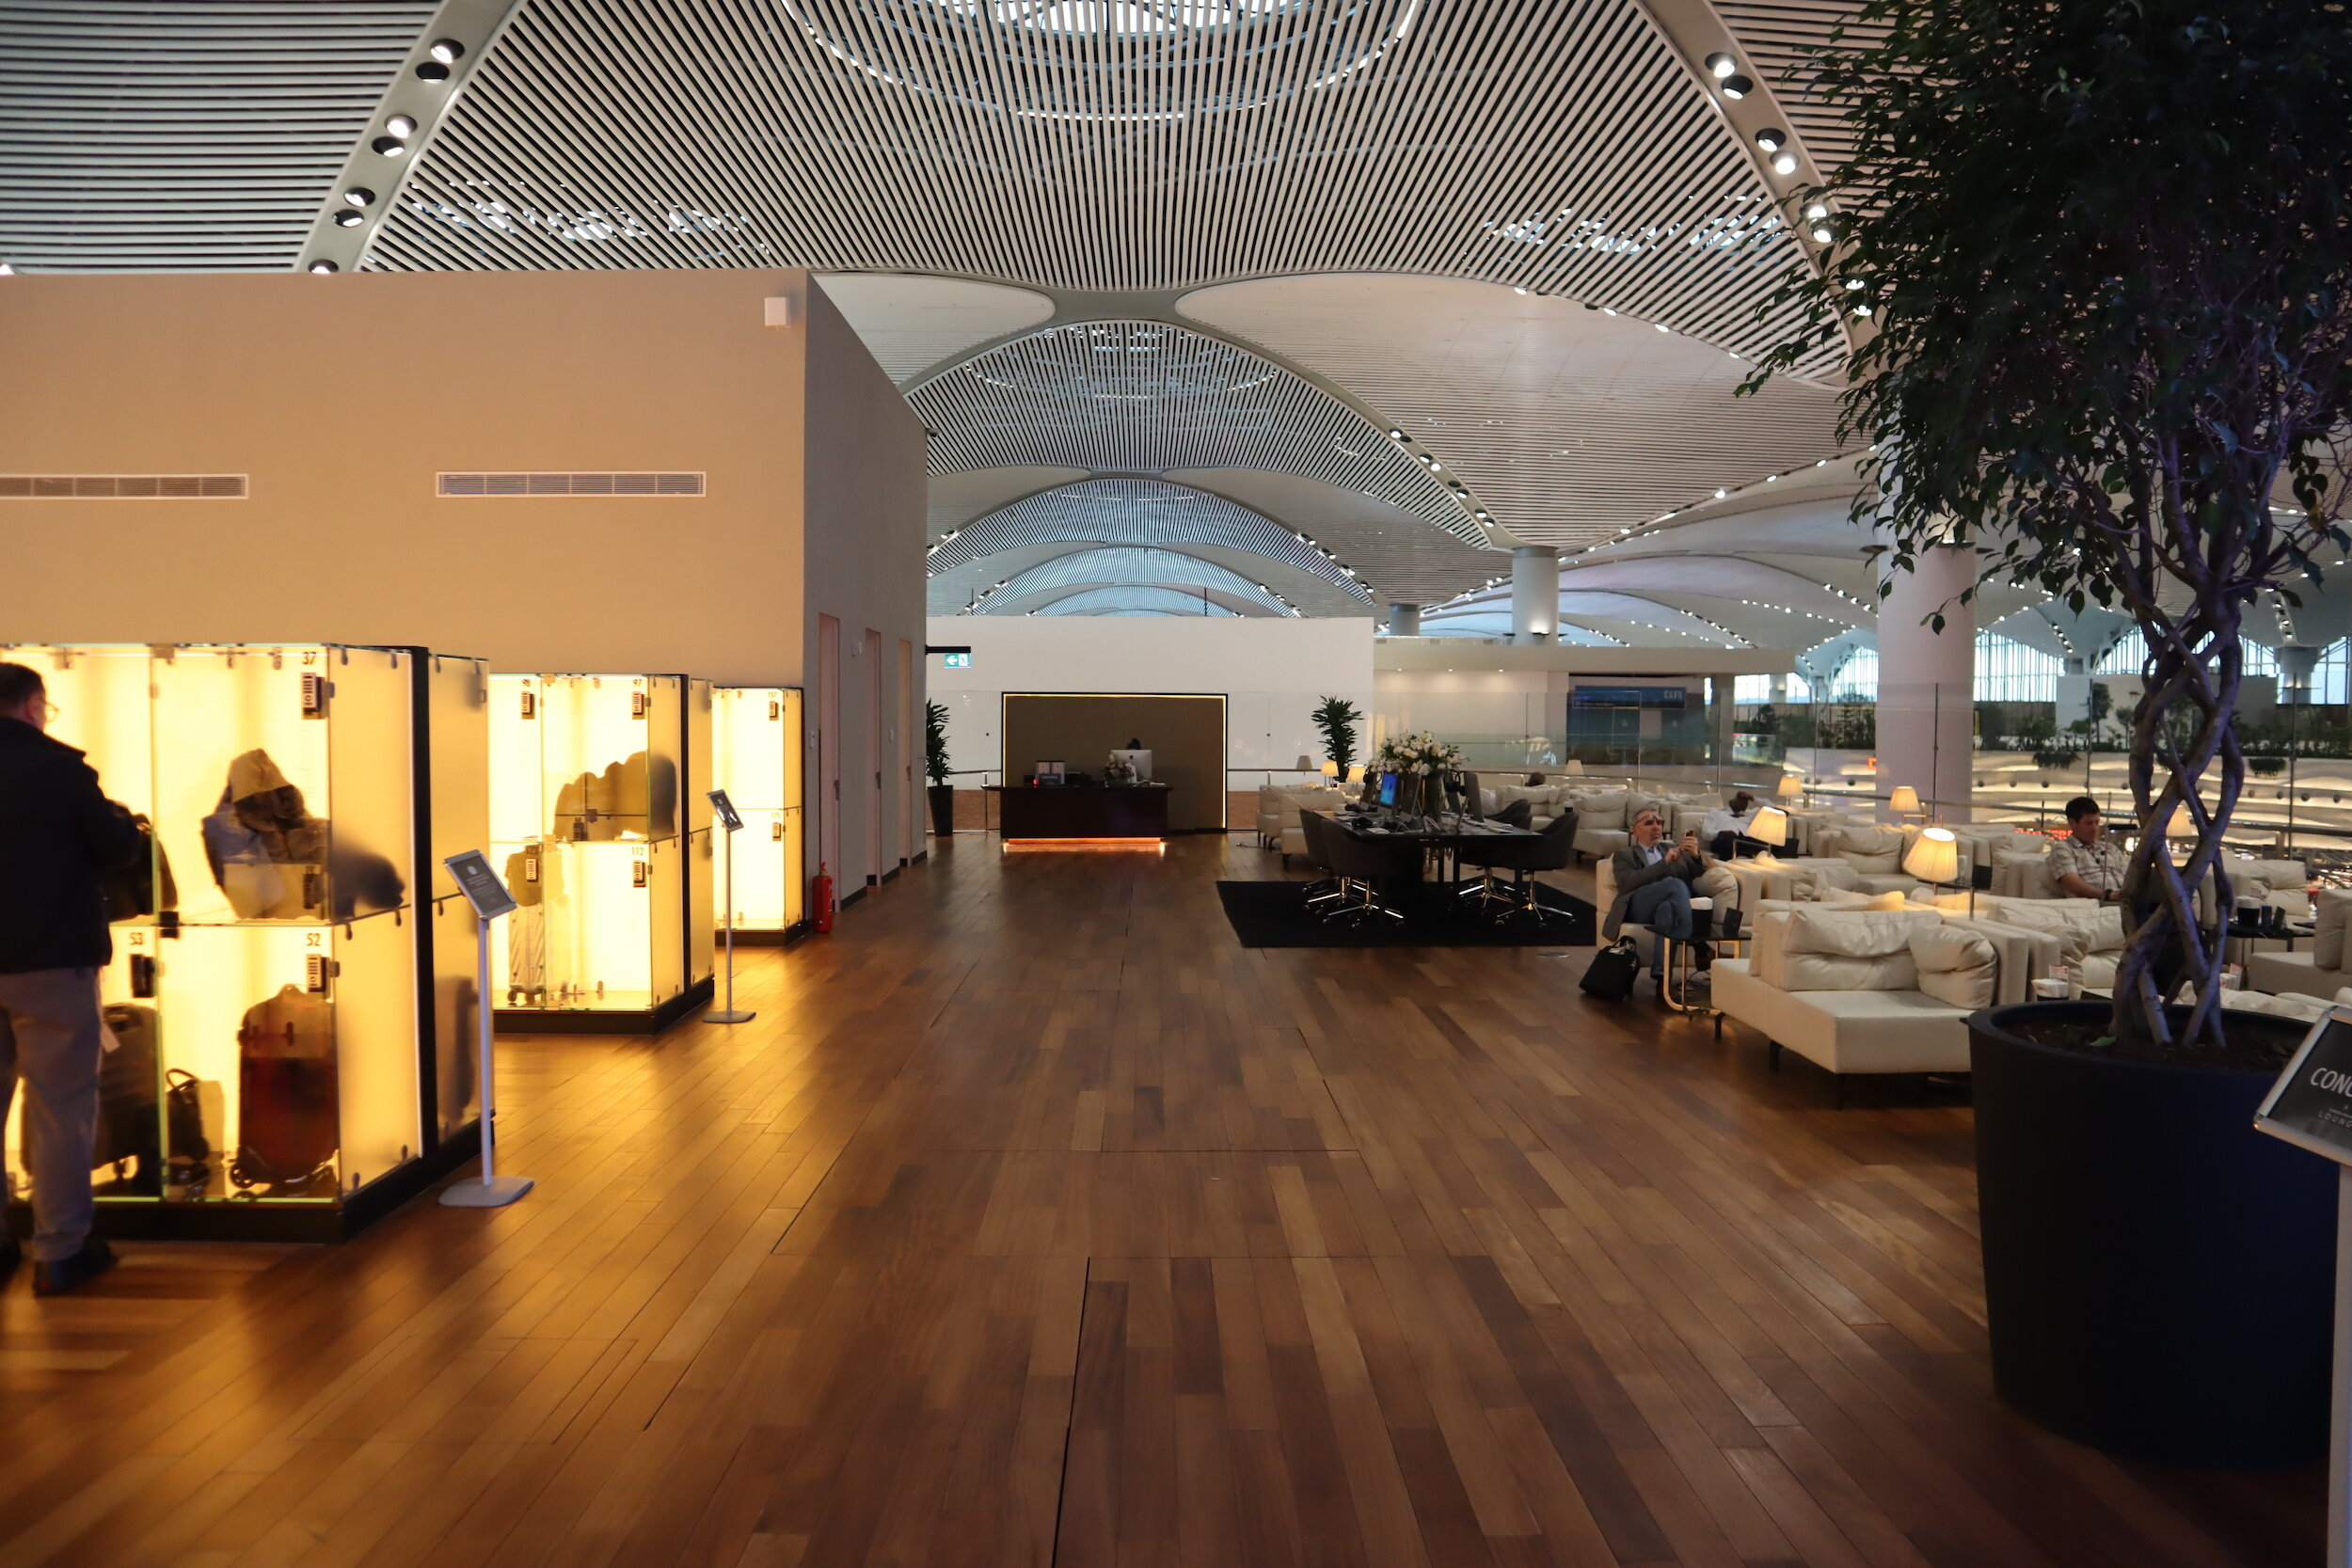 Turkish Airlines Business Lounge Istanbul – Turning left from the entryway